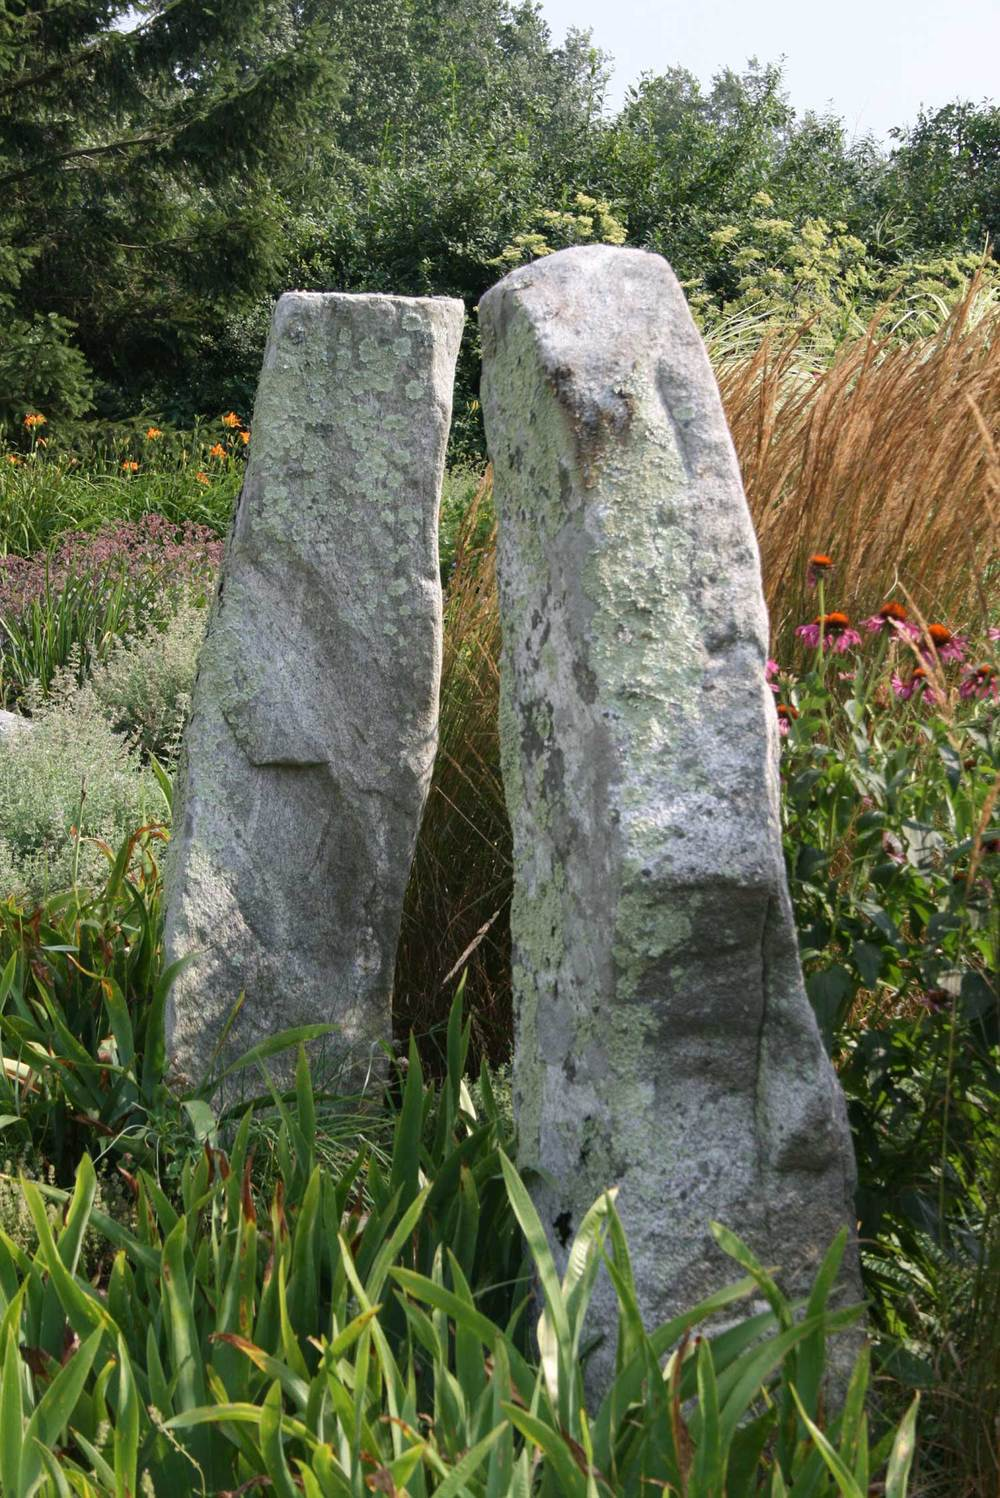 Granite monoliths as stone pillars